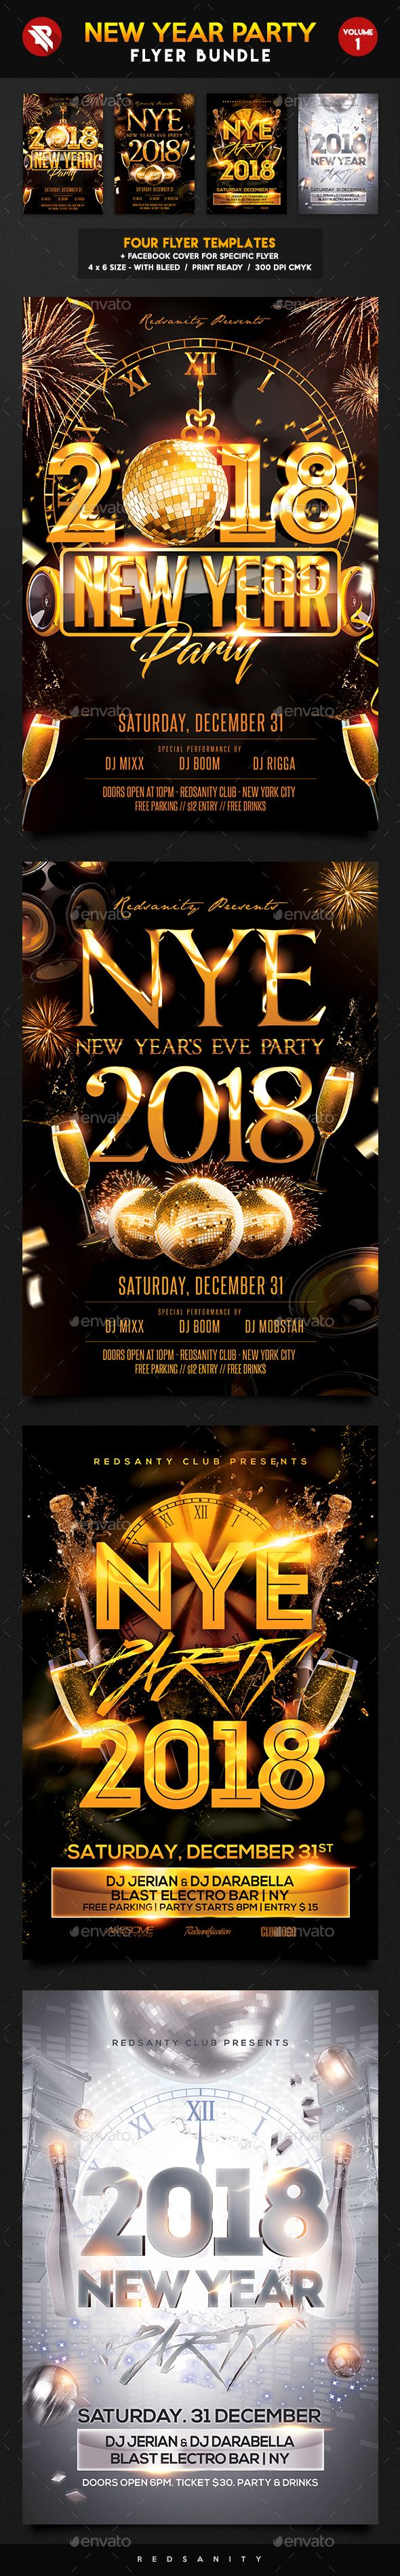 New Year Party Flyer Bundle Vol  Party Flyer Event Flyers And